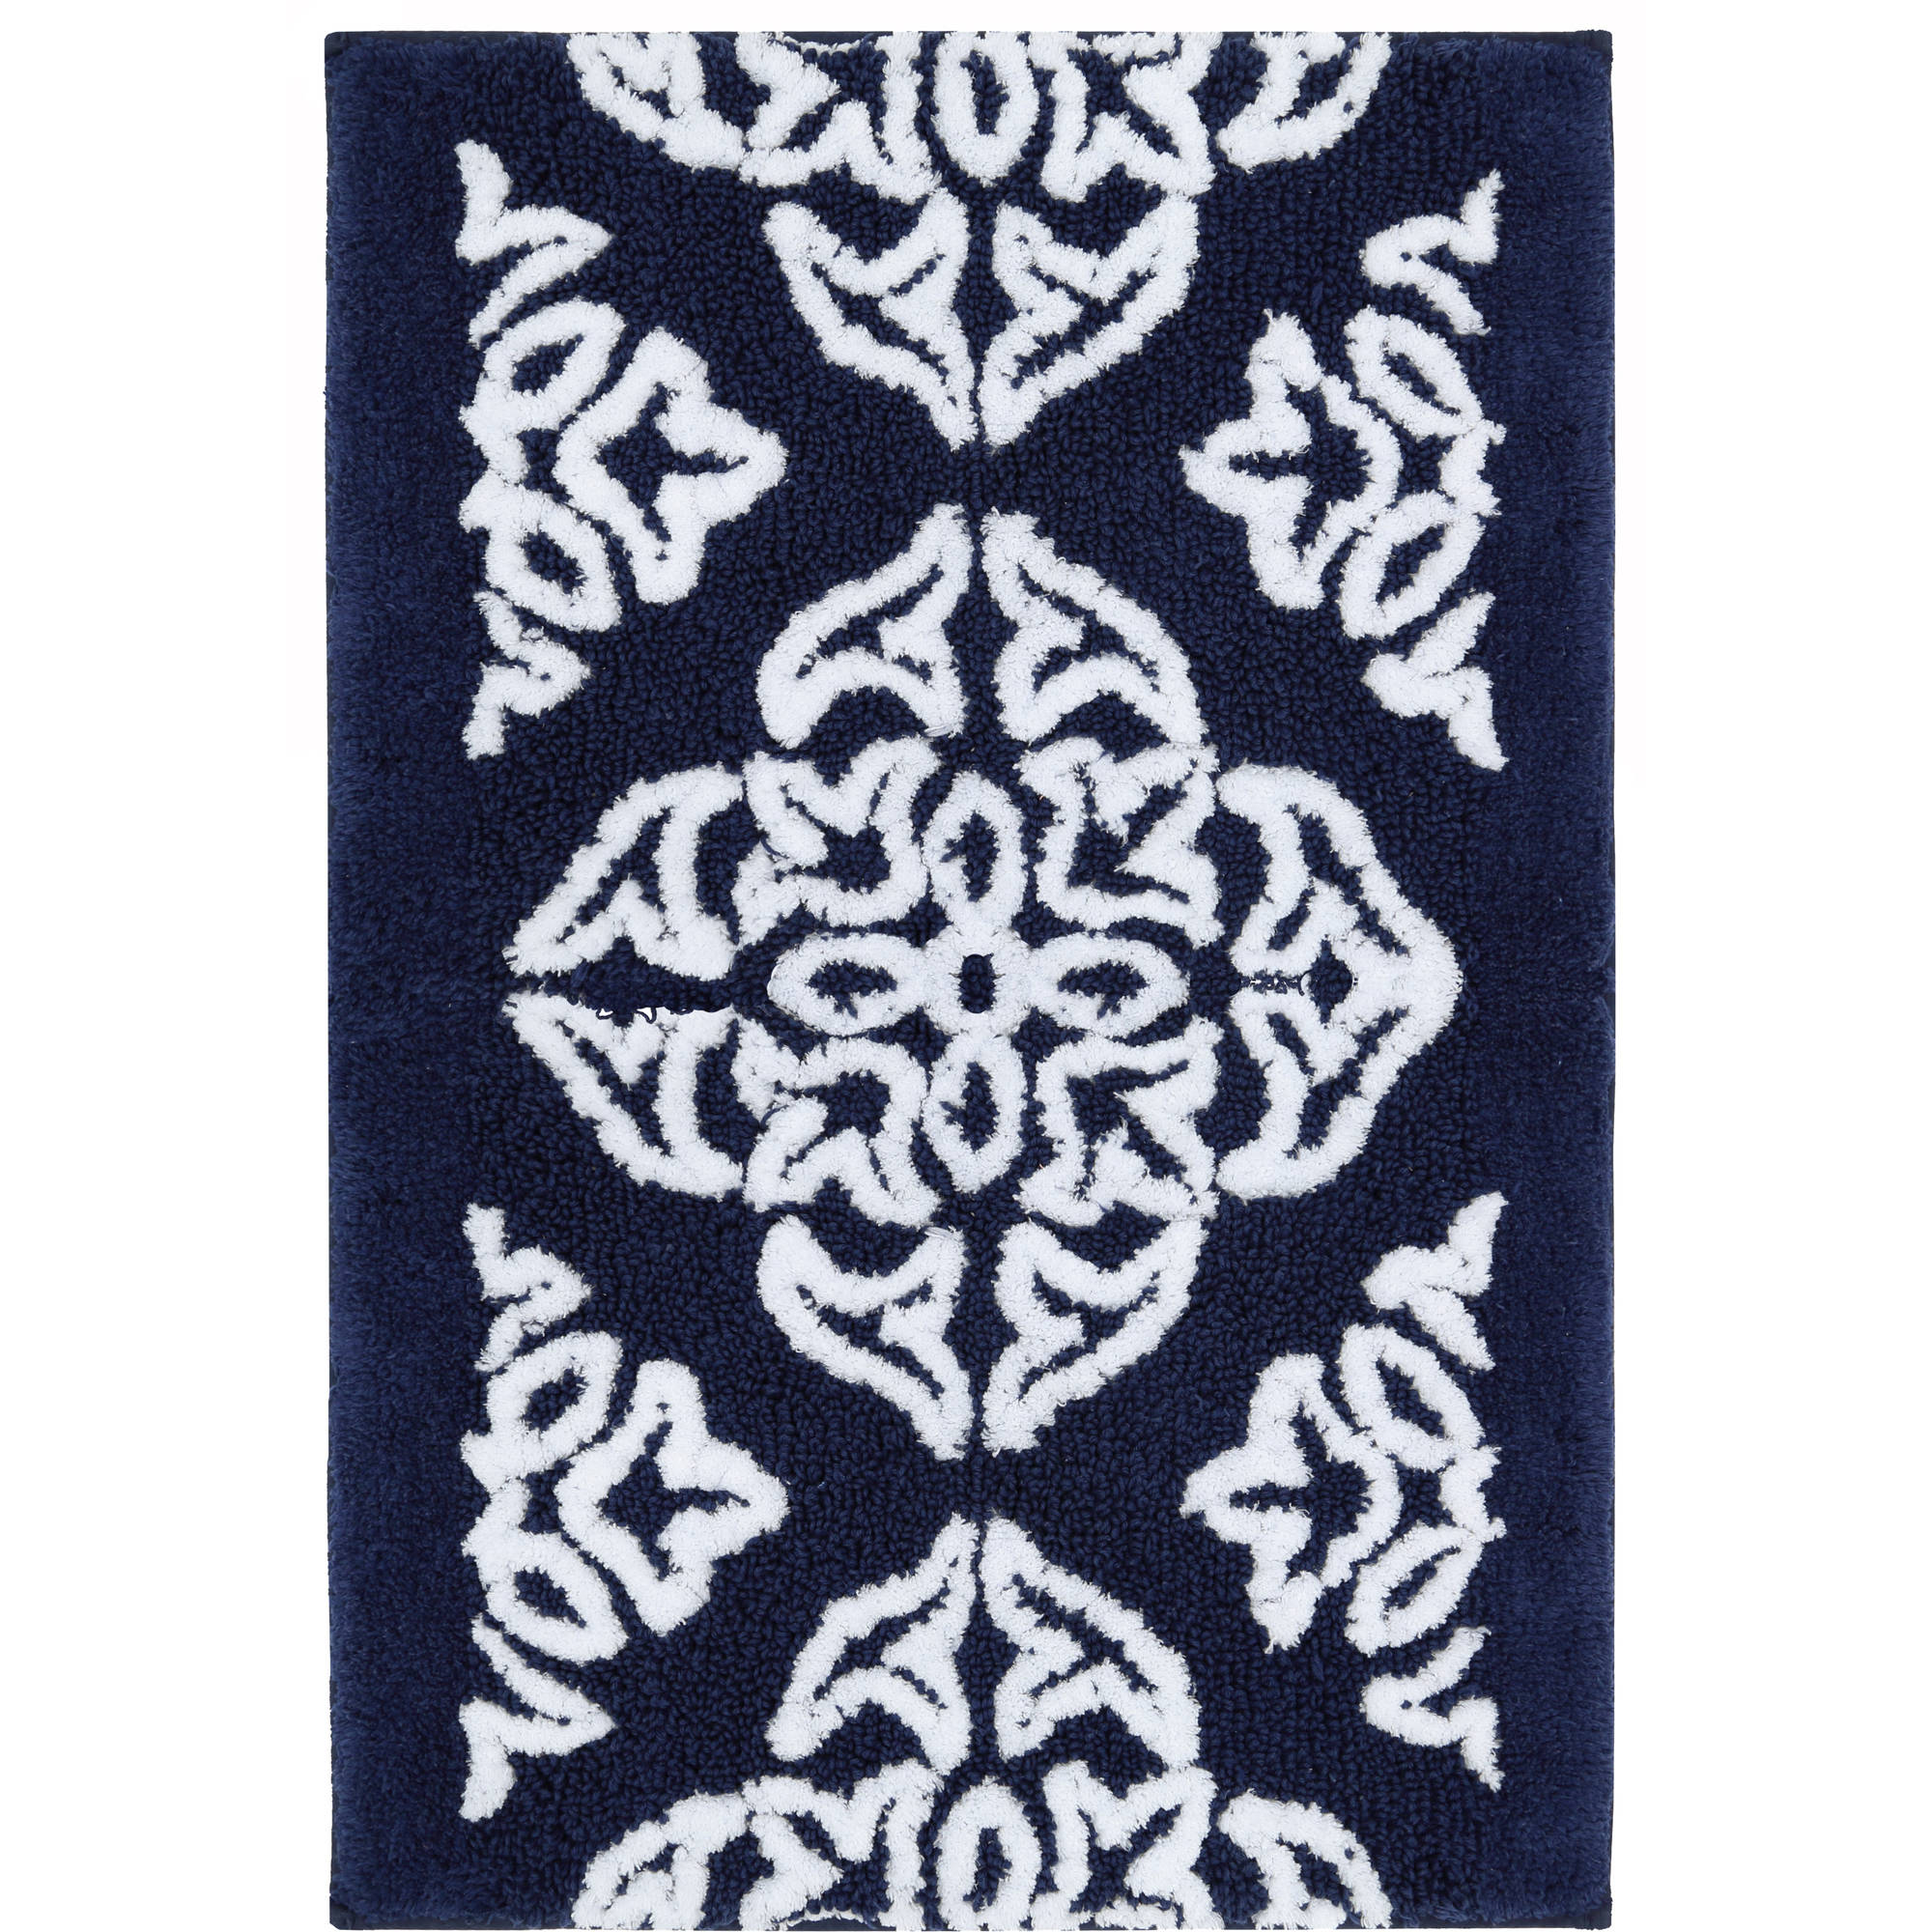 Better Homes and Gardens Indigo Arabesque Bath Mat